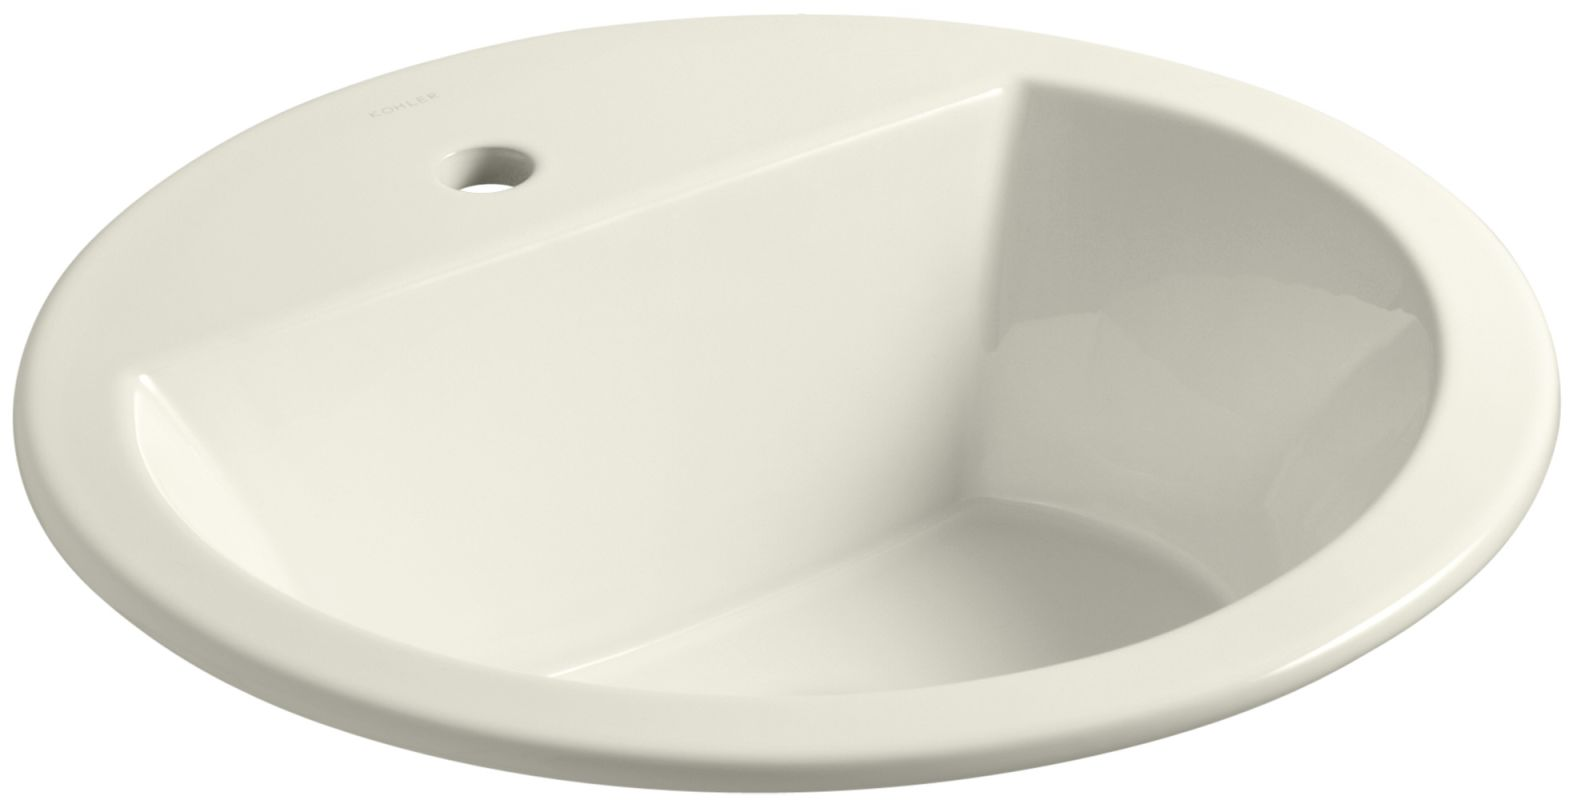 Bryant Auto Sales >> Faucet.com | K-2714-1-96 in Biscuit by Kohler